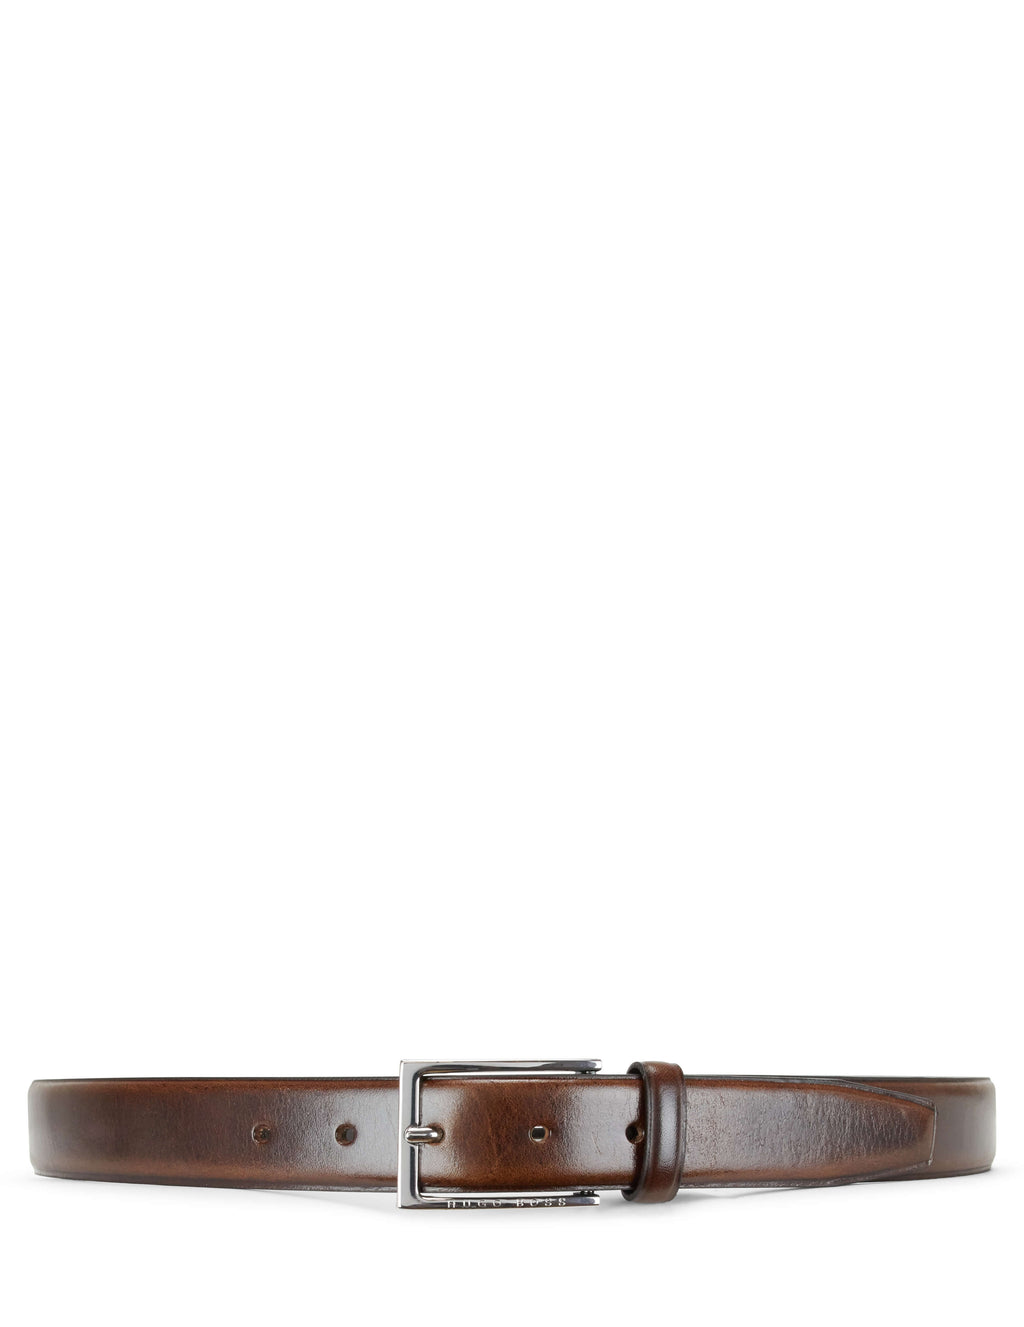 Boss Hugo Boss Smooth Leather Belt Dark Brown 50402784208 Men's Giulio Fashion